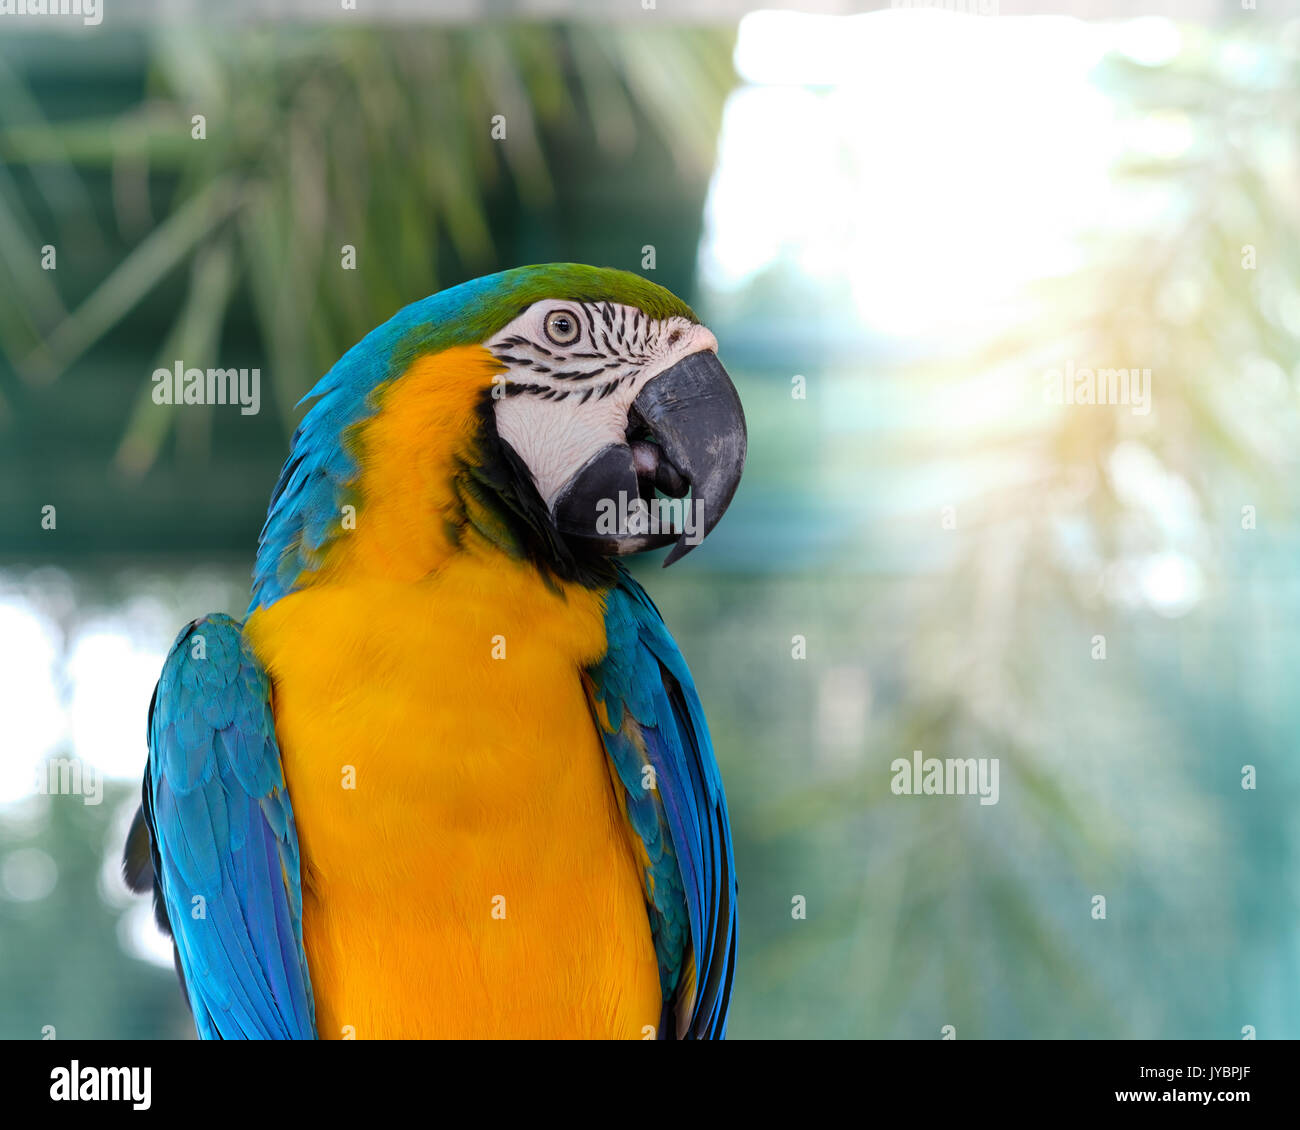 Blue-and-yellow macaw Stand on a branch with bokeh  background. - Stock Image